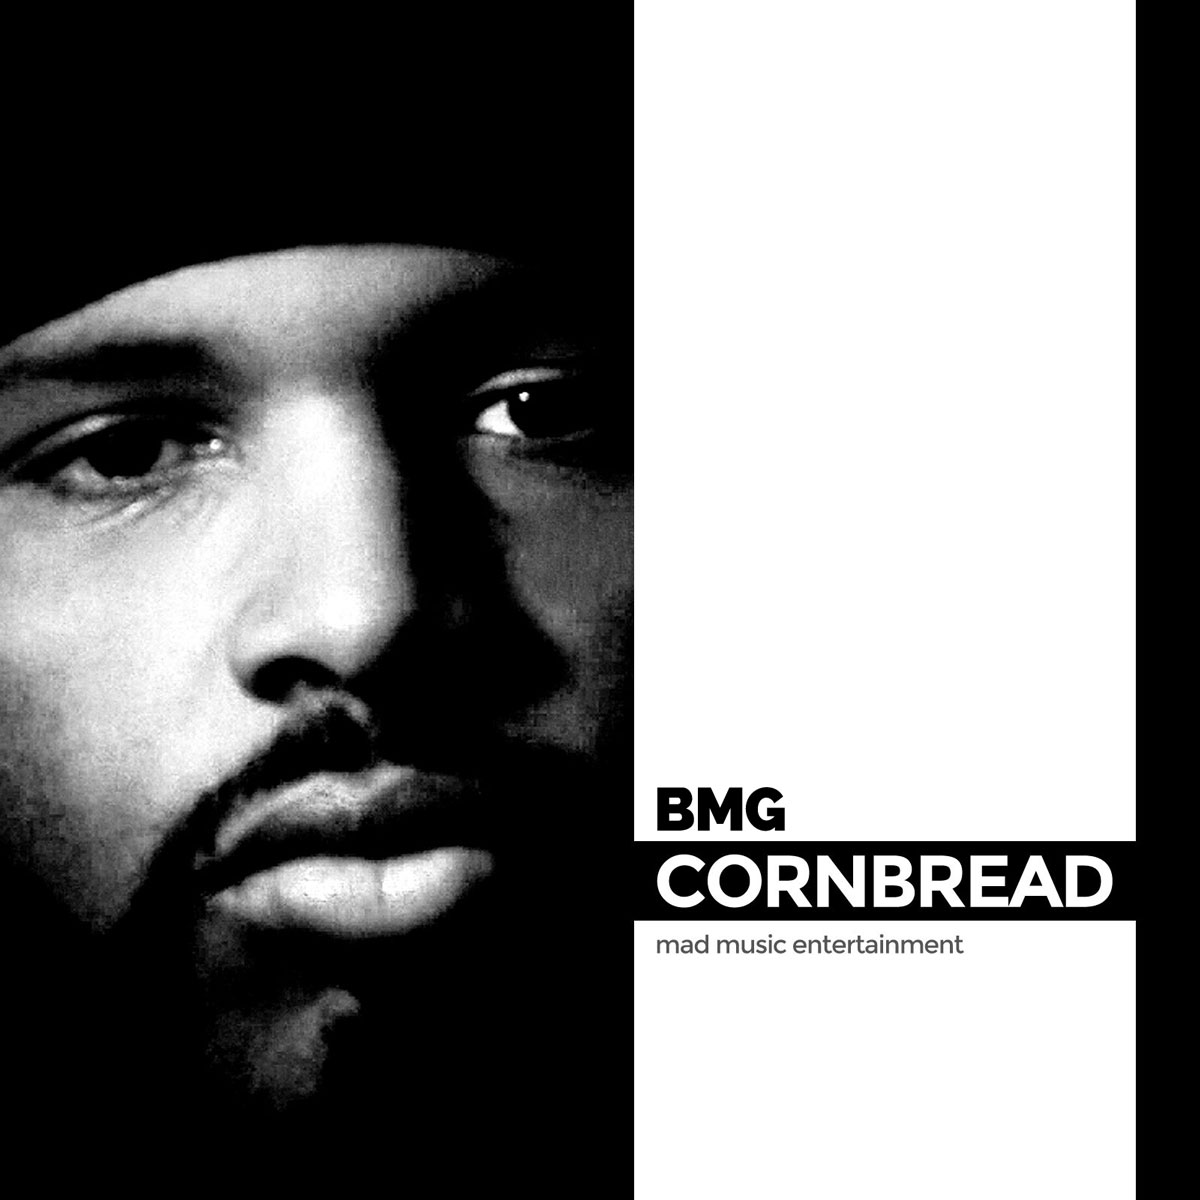 Cornbread, MAD Music Entertainment